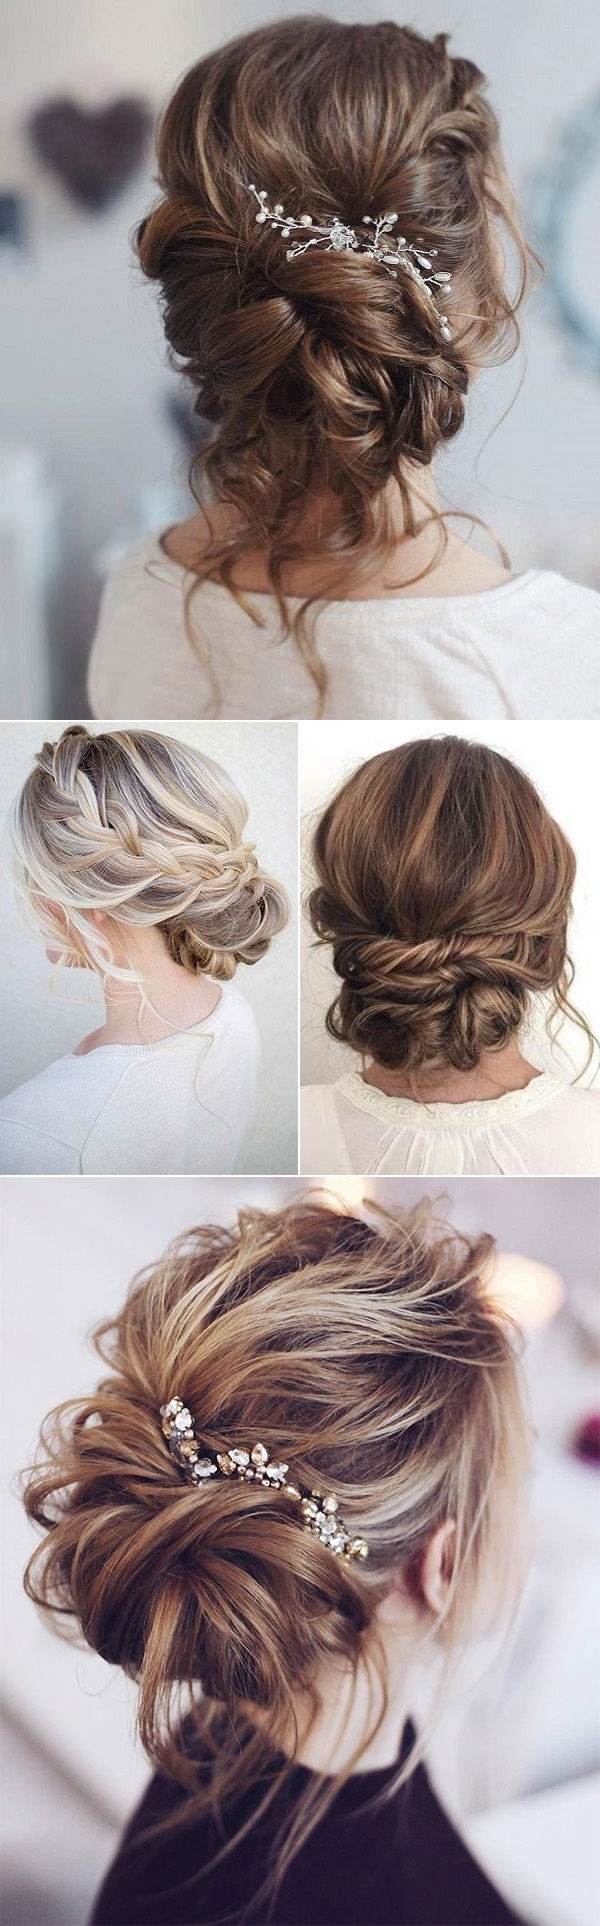 25 Drop Dead Bridal Updo Hairstyles Ideas For Any Wedding Venues With Regard To Loose Updo Hairstyles (View 6 of 15)